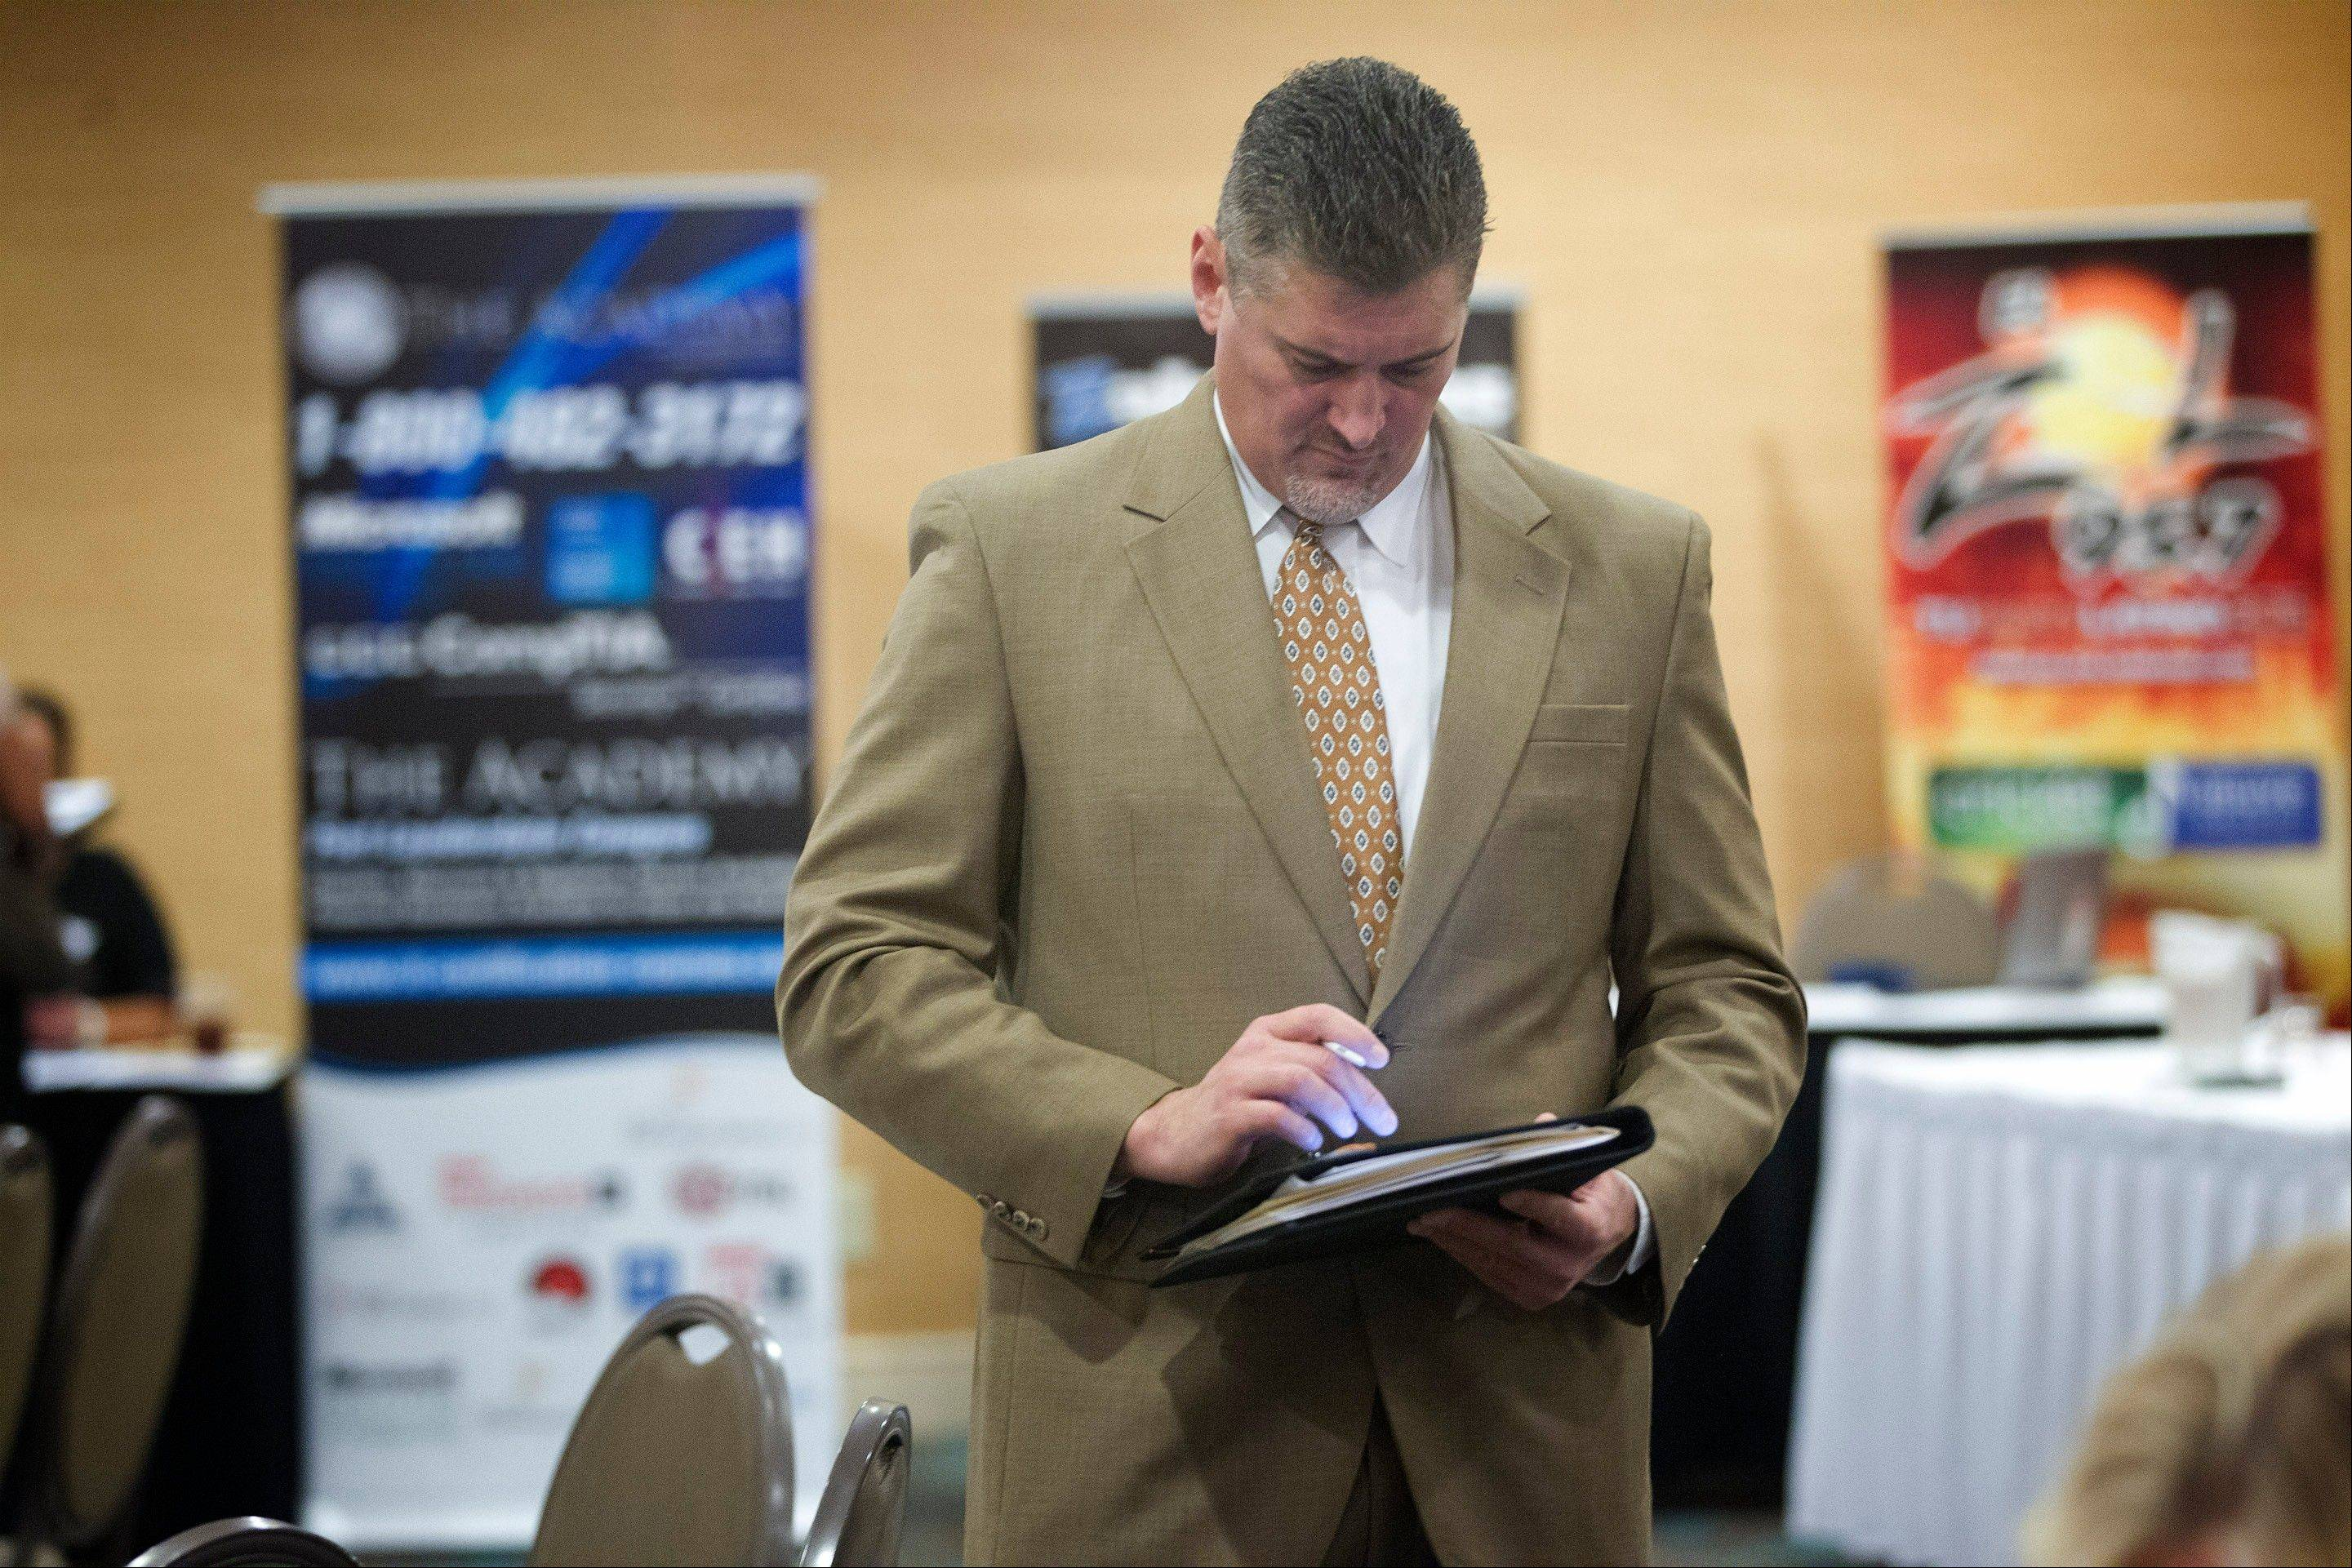 An unidentified jobseeker uses his iPad to help fill out job applications in Florida earlier this year.